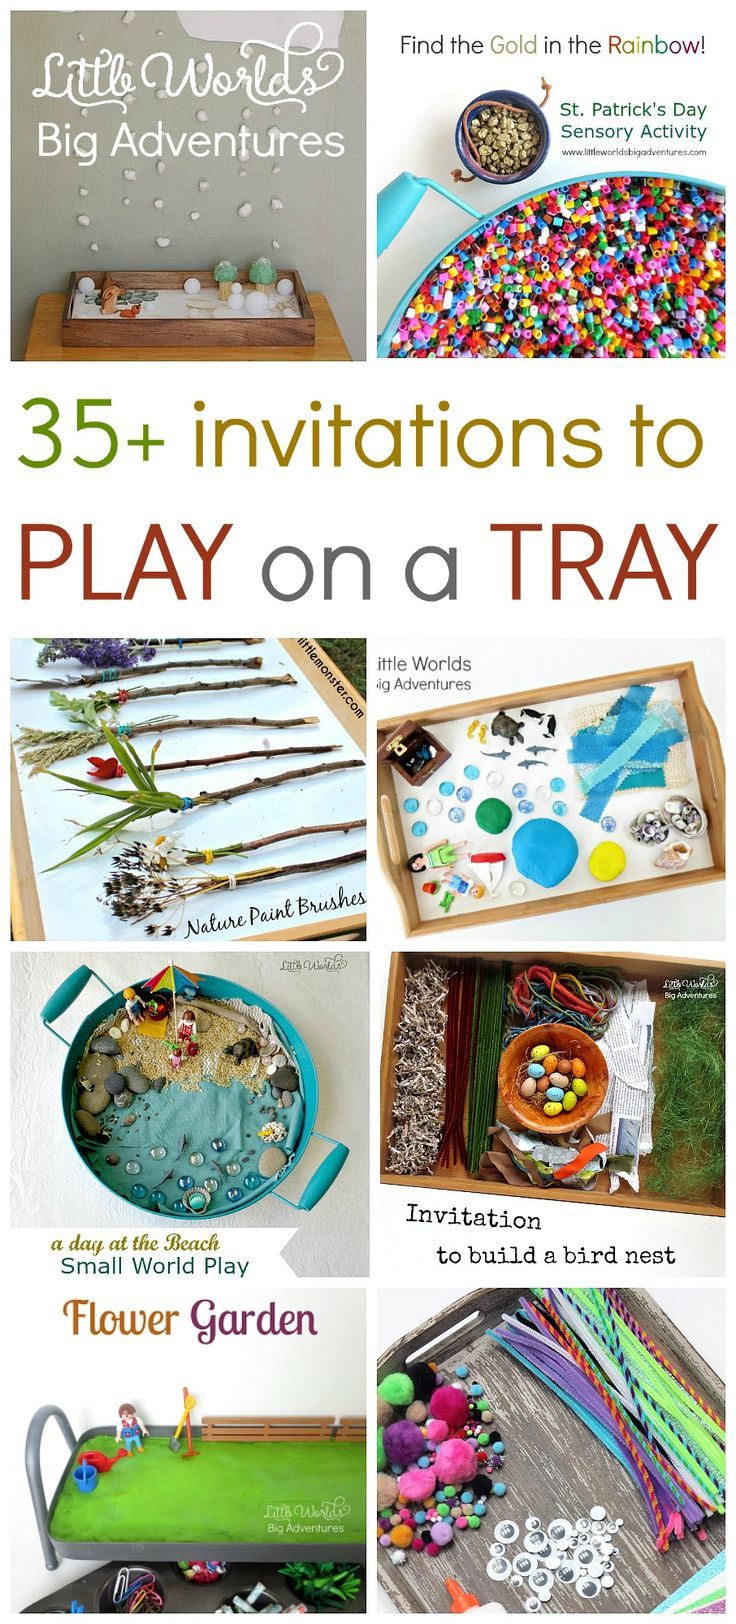 35 Ideas to Play on a Tray, Invitations to Play, Create and Explore! | Little Worlds Big Adventures